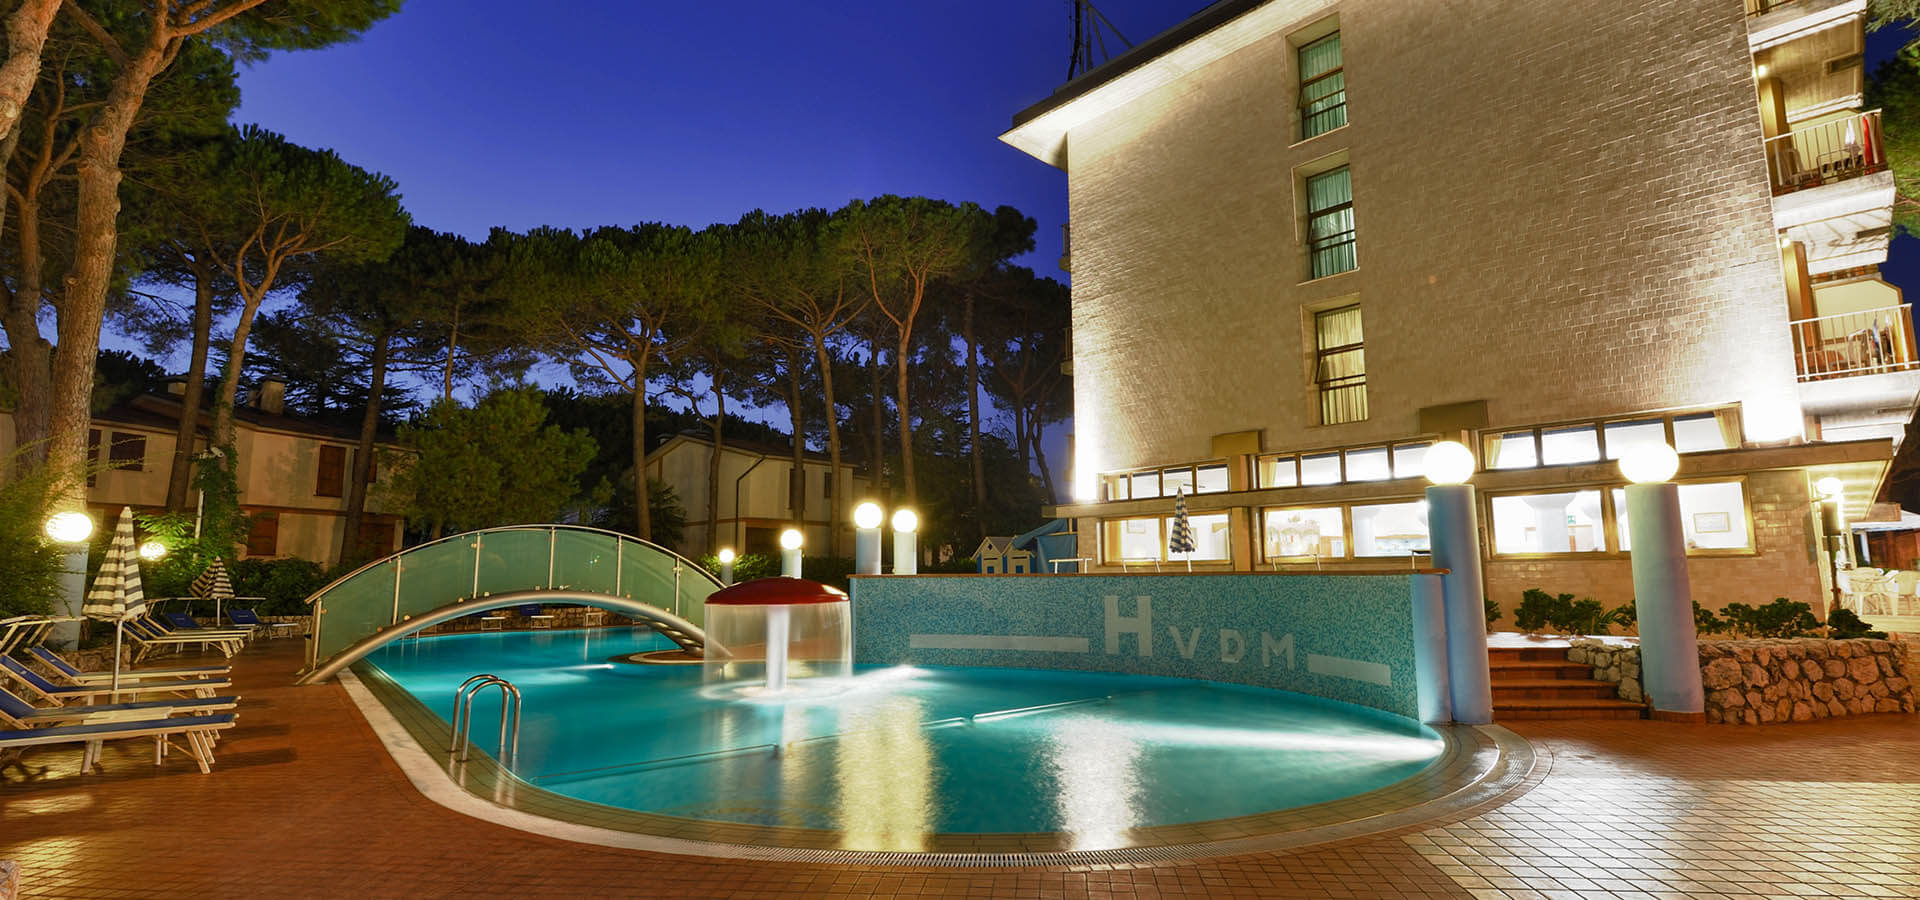 3 star hotel with swimming pool in Lignano